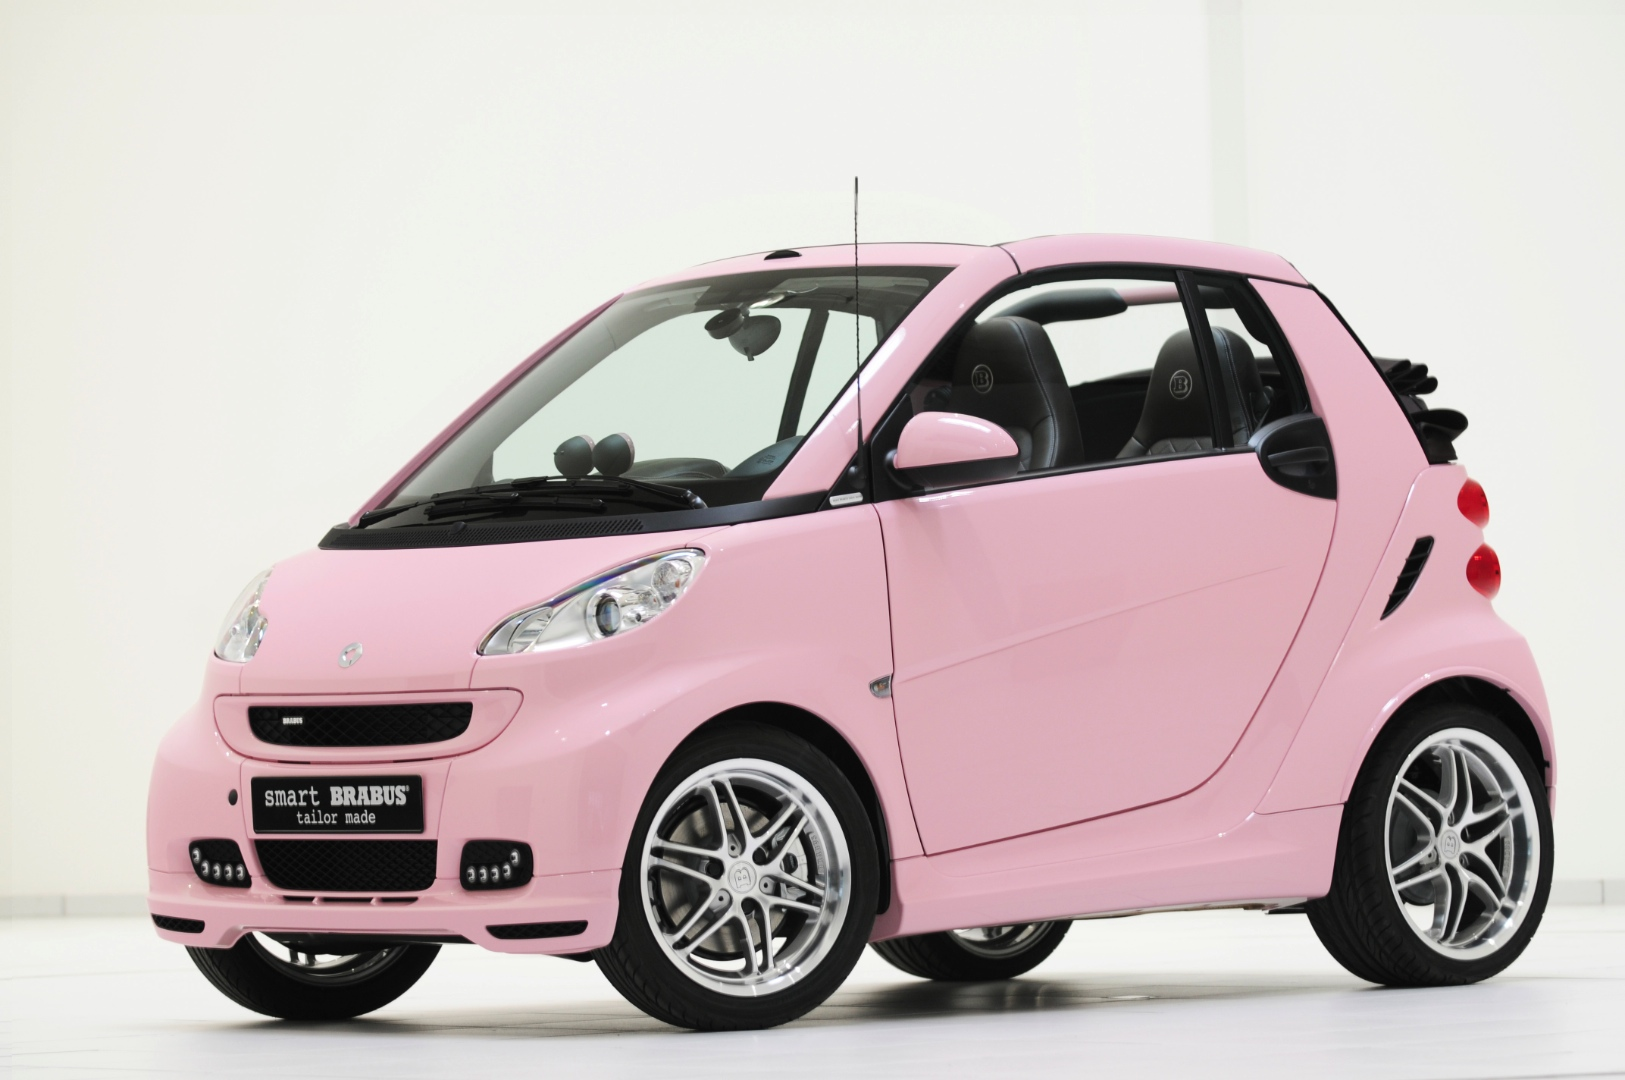 8136477smart-fortwo-wins-most-embarrassing-car-award-64594_1